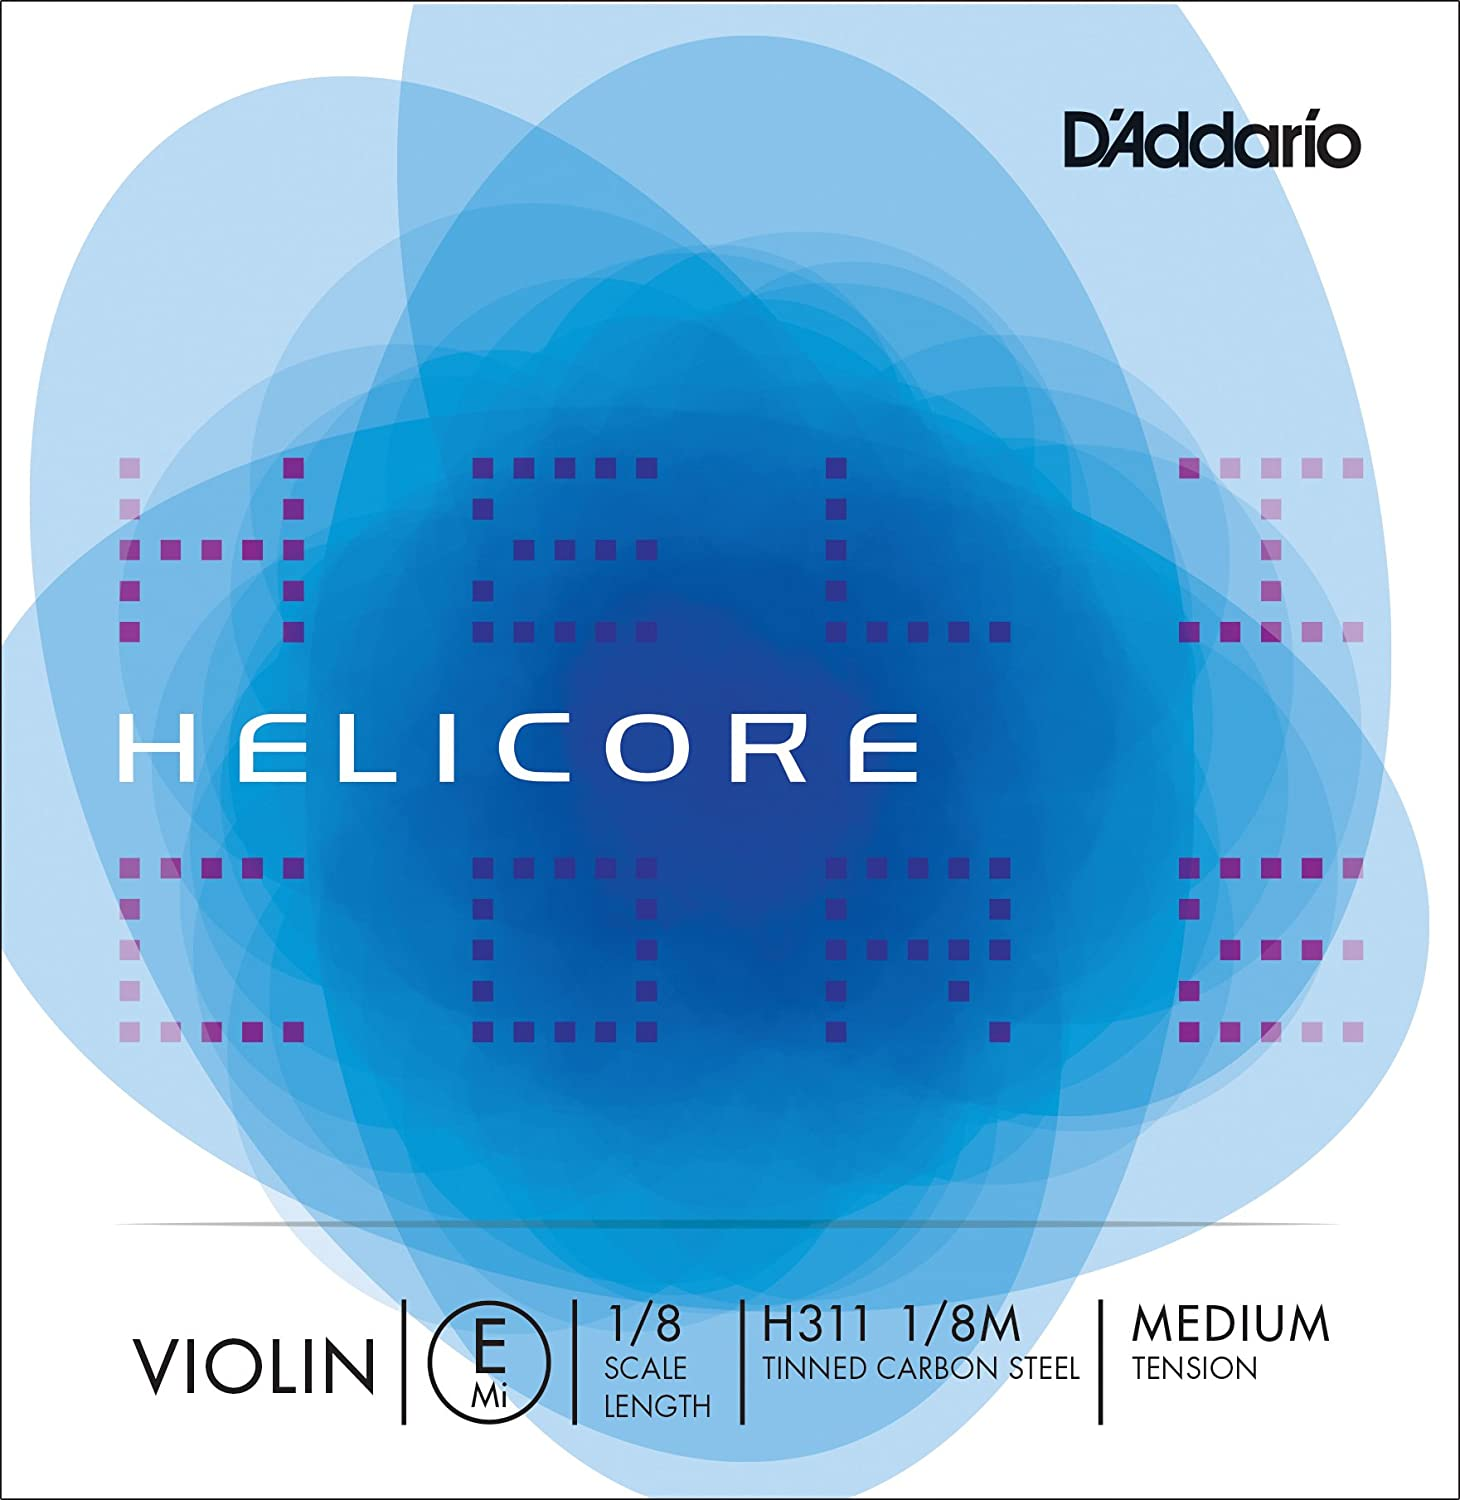 D'Addario Helicore Violin Single E String, 4/4 Scale, Heavy Tension D' Addario H311 4/4H